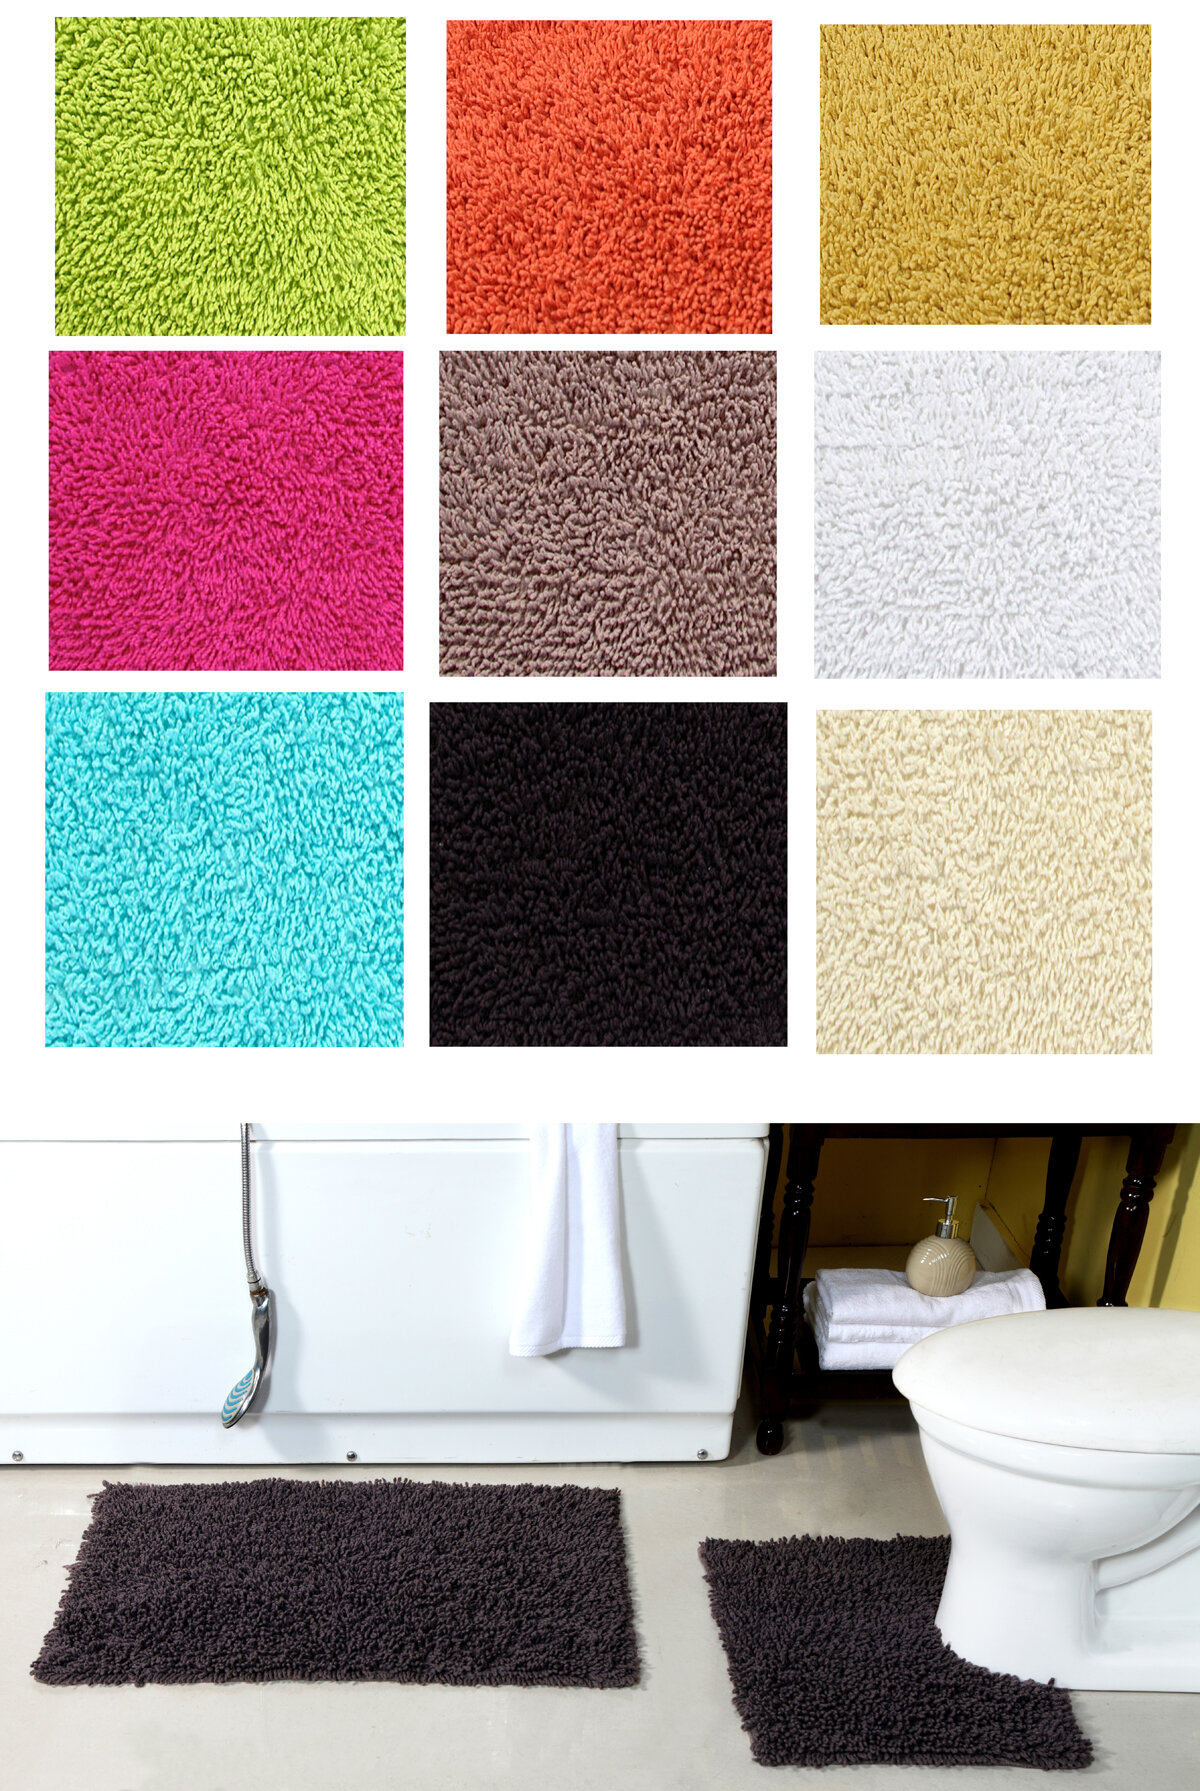 mat bath heated about goodworksfurniture bathroom xsdudnd mats important some facts corey